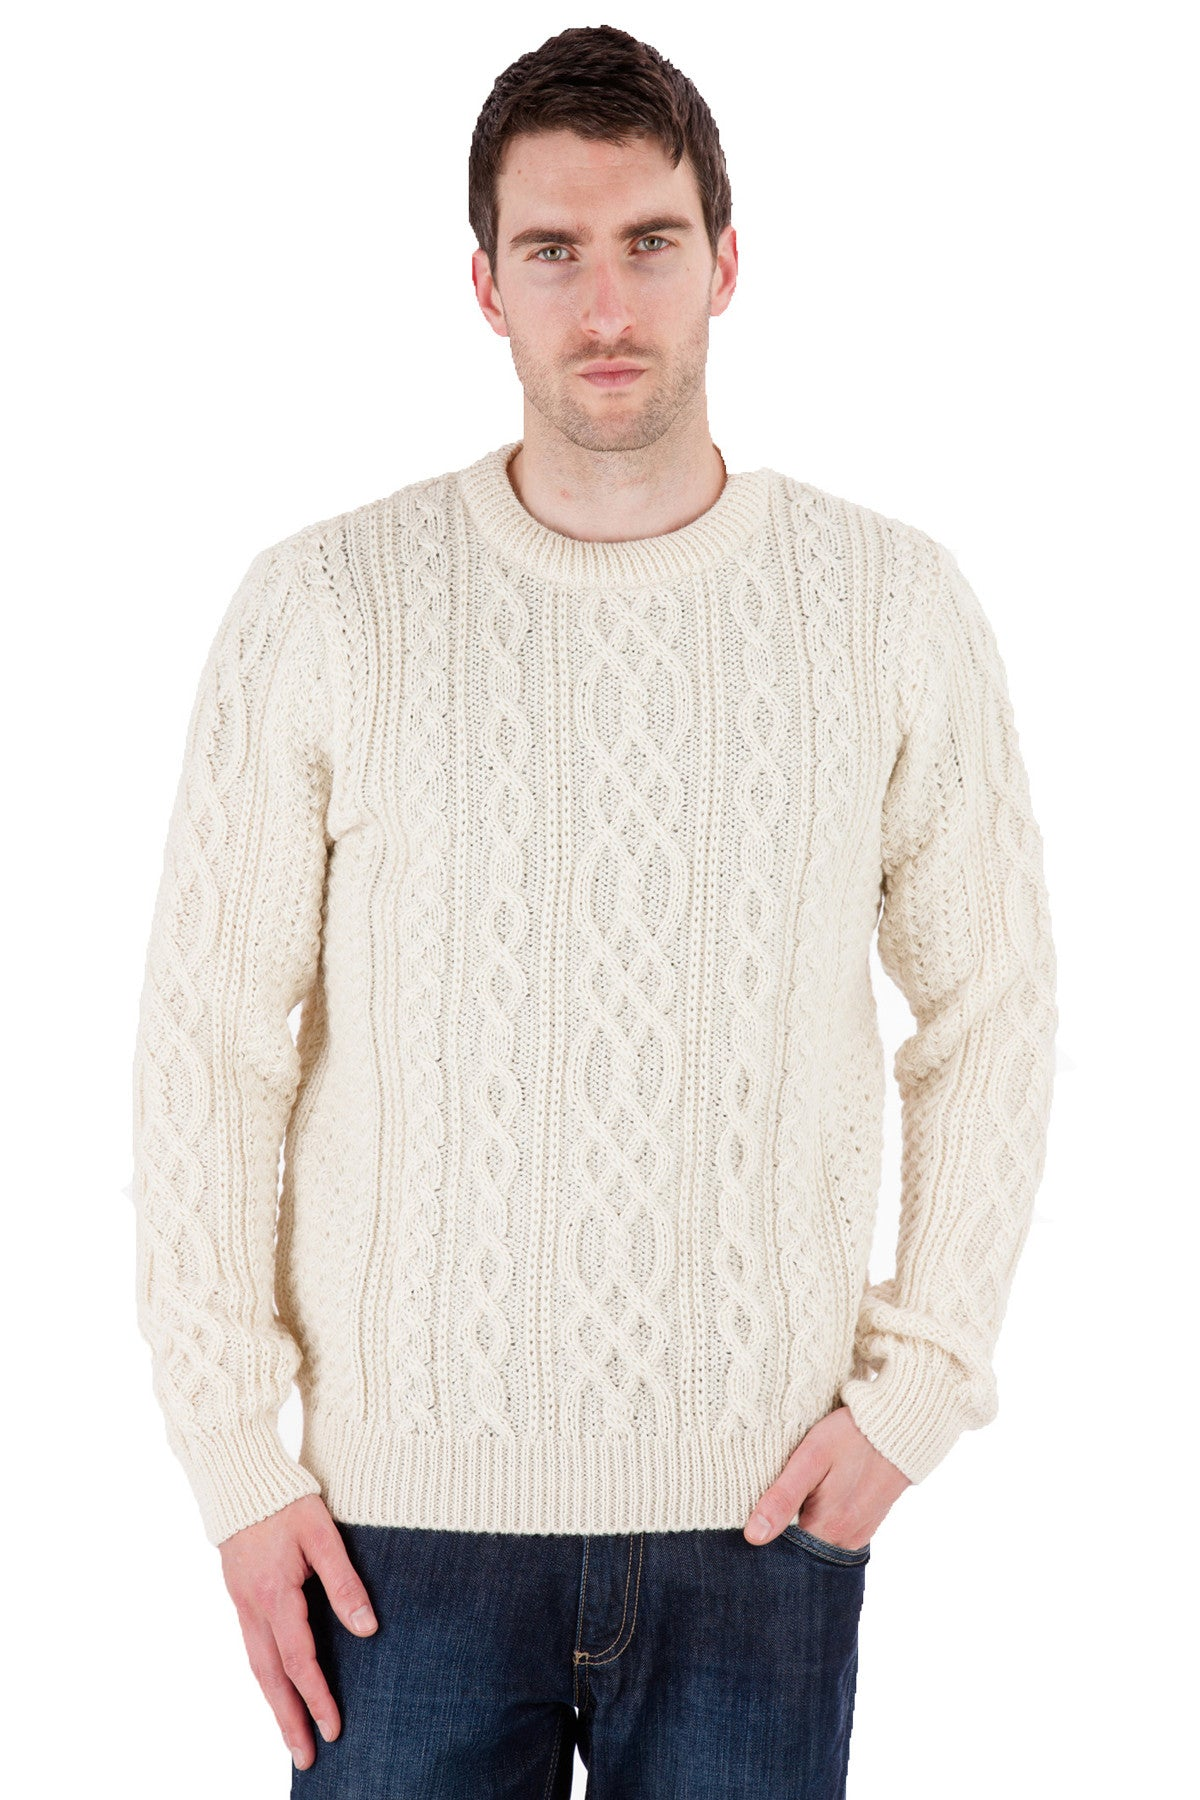 Thorpe - Aran Jumper Sweater - Pure British Wool